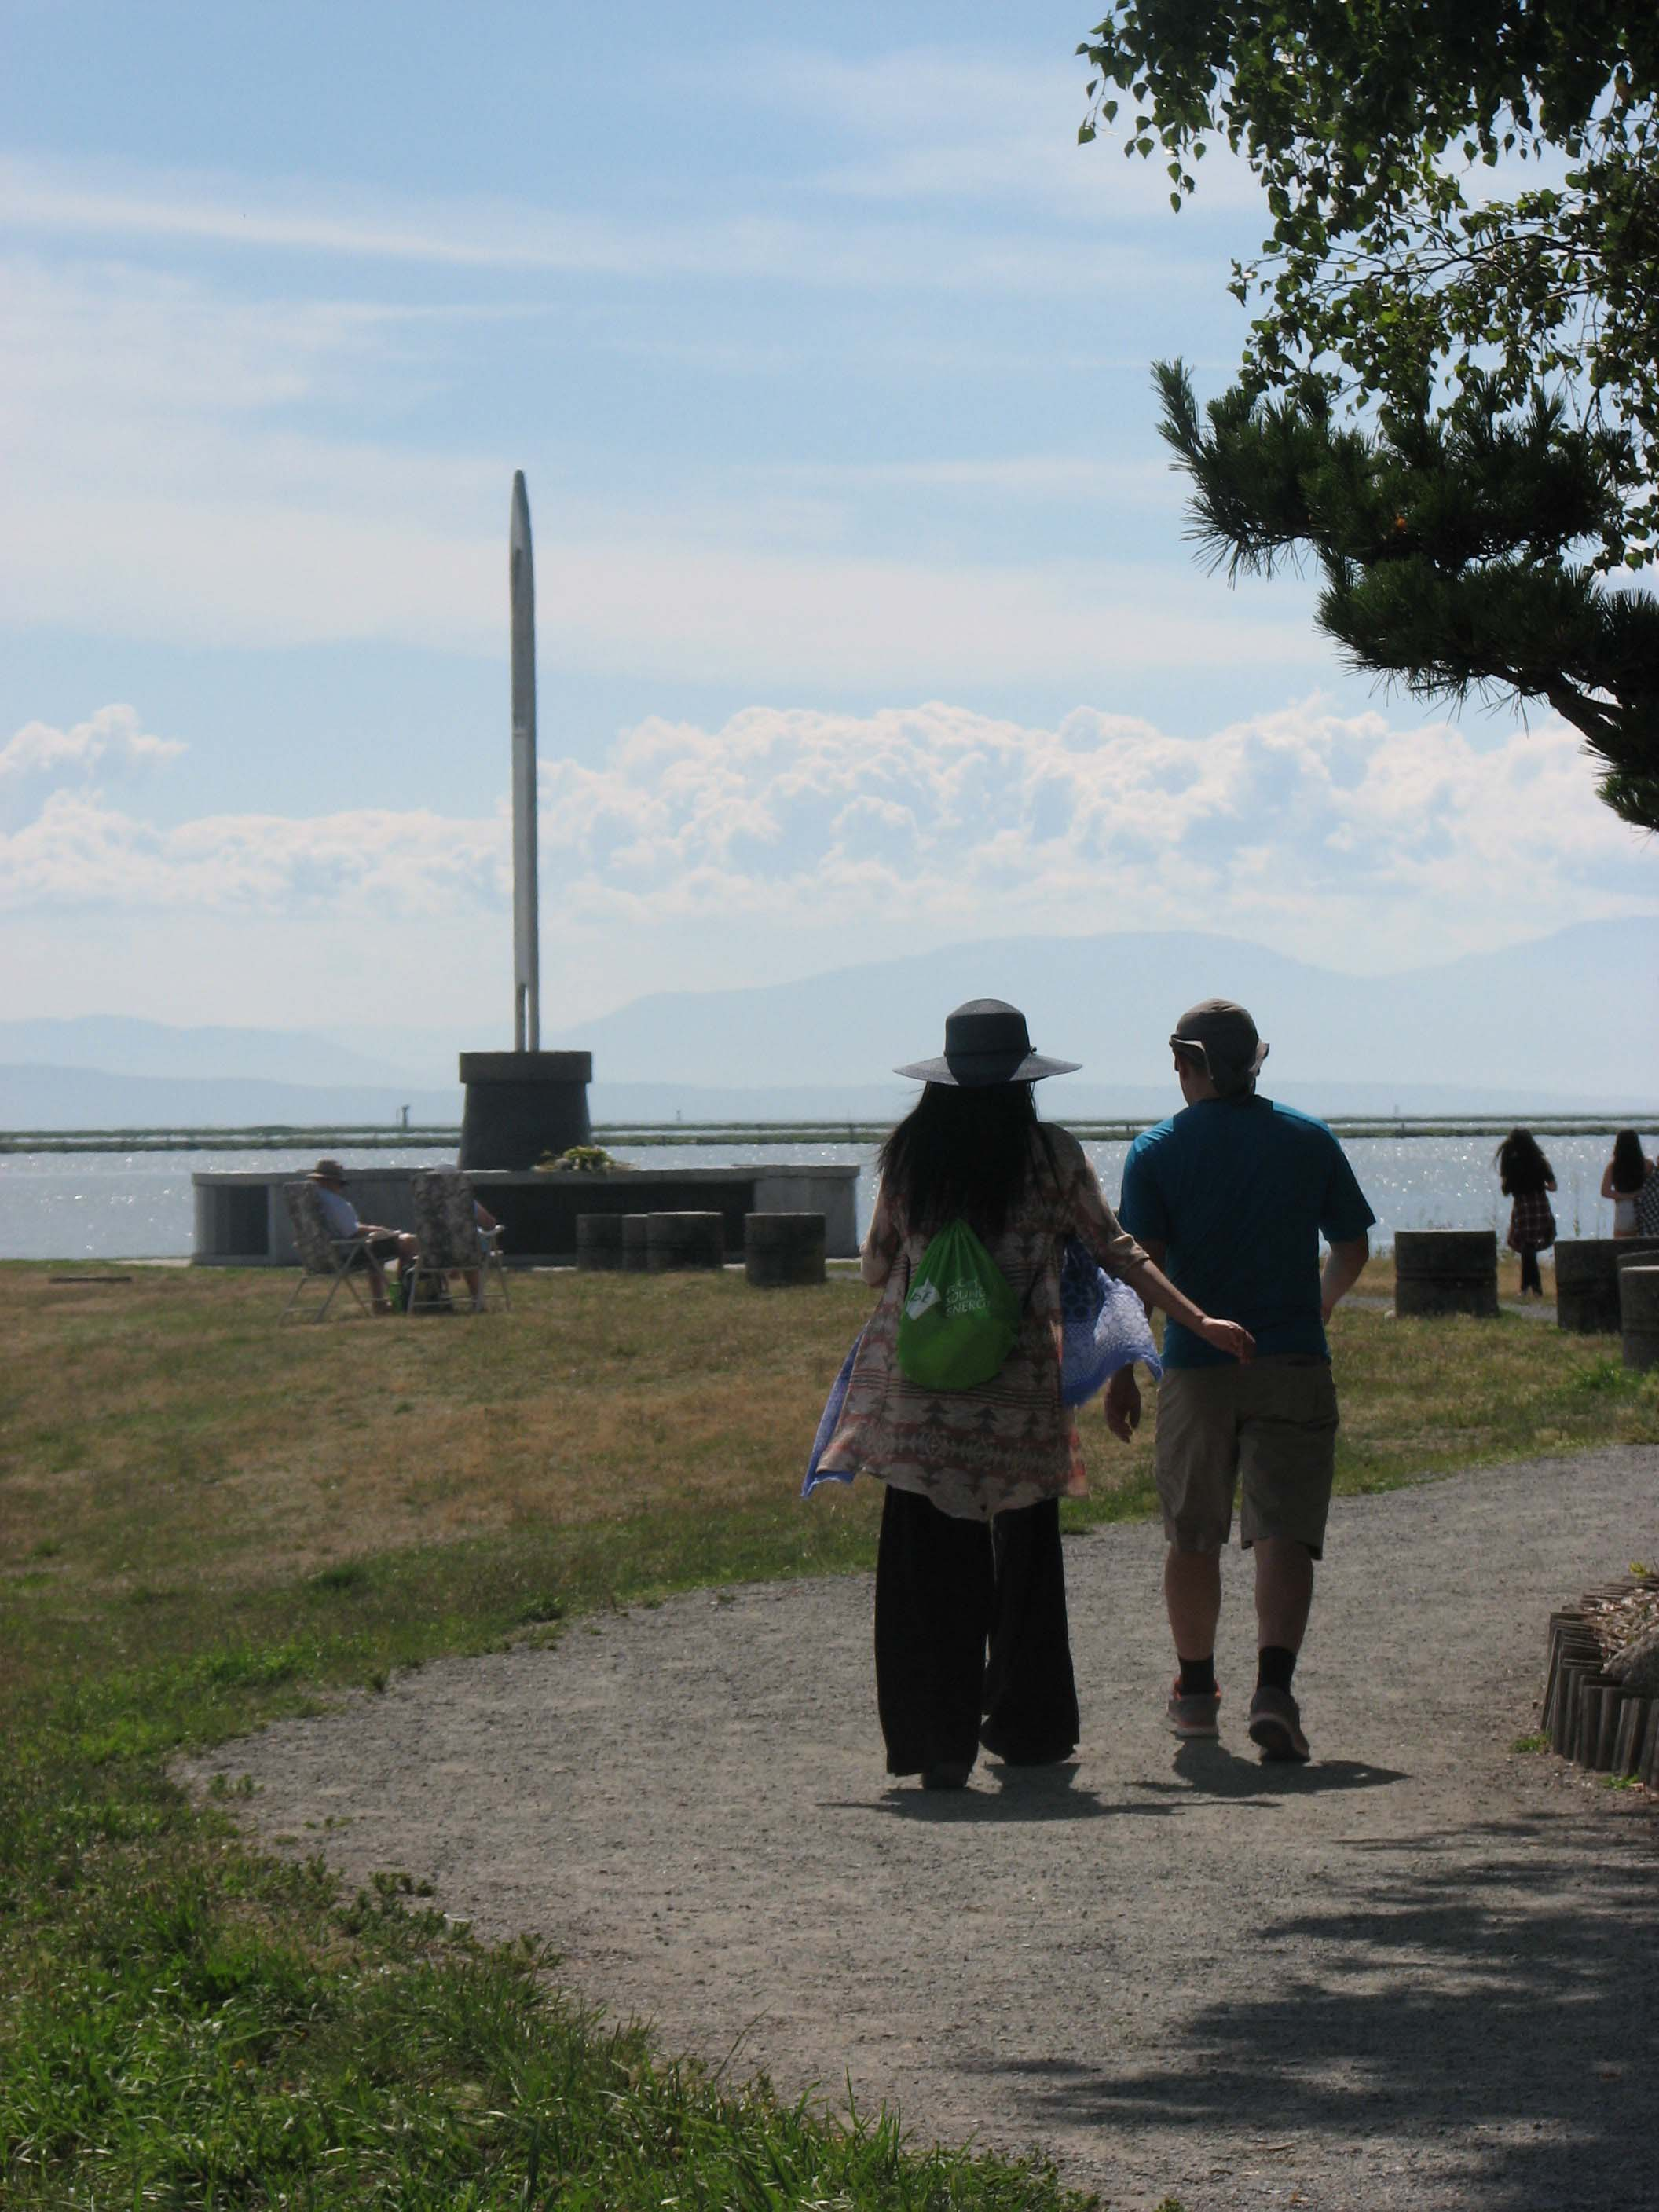 People walking the path in Garry Point Park pass by Fisherman's Memorial